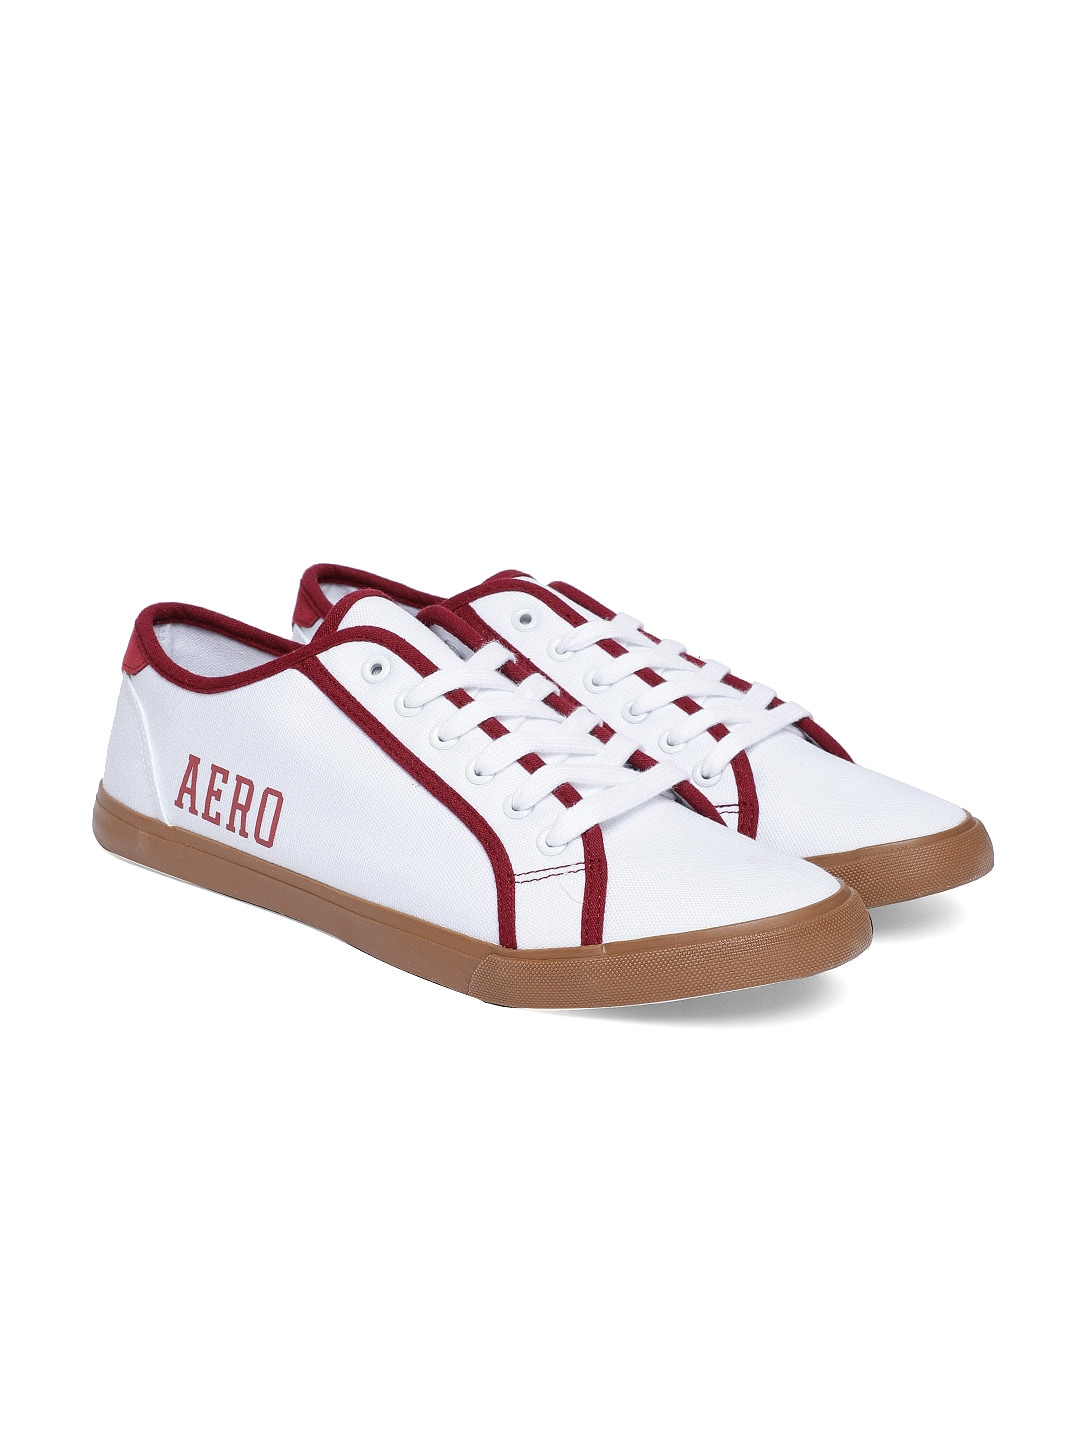 8fcfc34992ee Aeropostale Casual Shoes - Buy Aeropostale Casual Shoes online in India